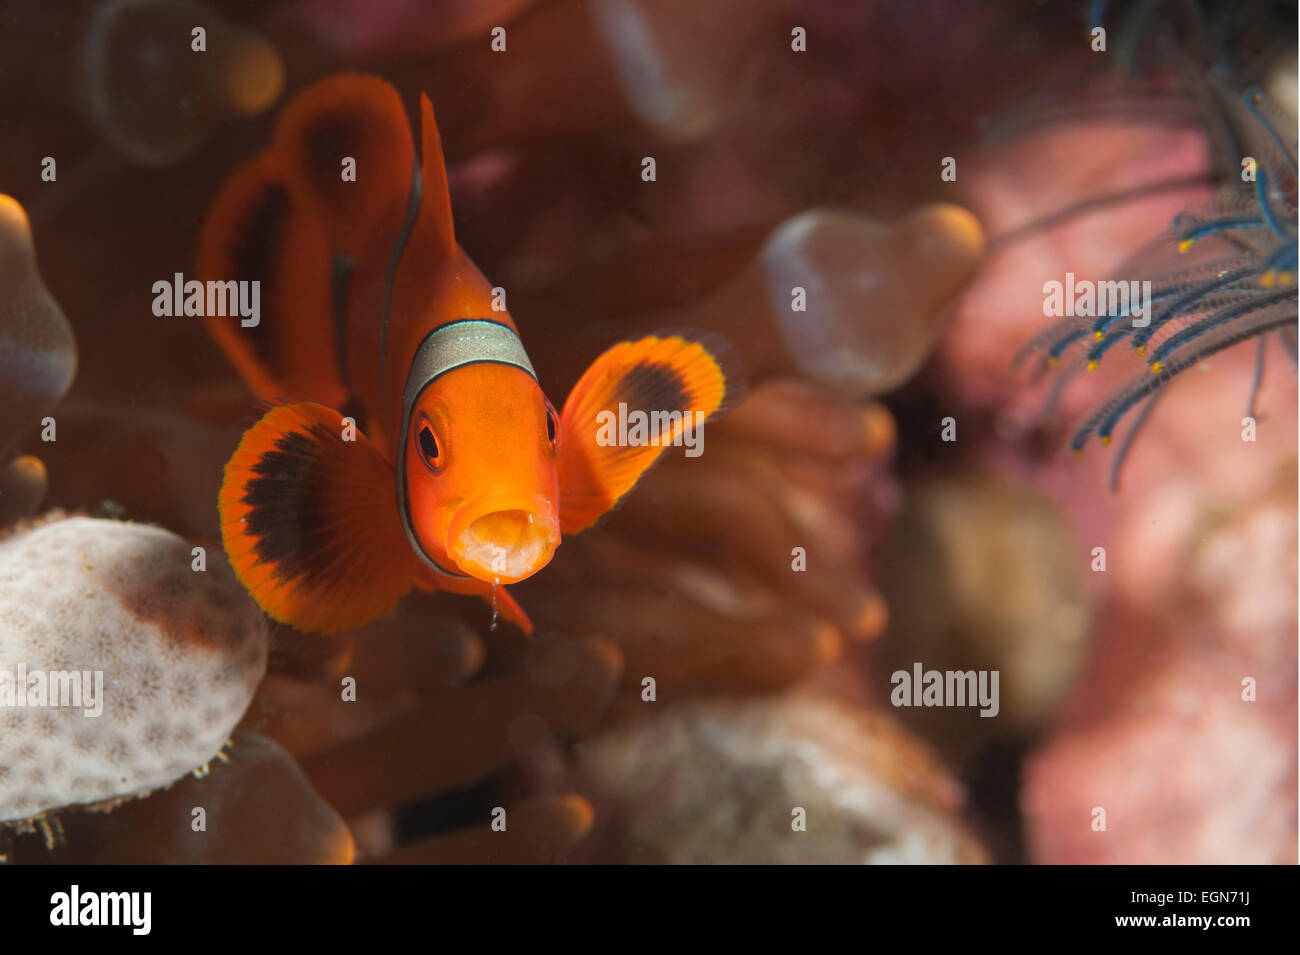 A Spine-cheek Anemonefish with an open mouth on a reef in the Solomon Islands. - Stock Image